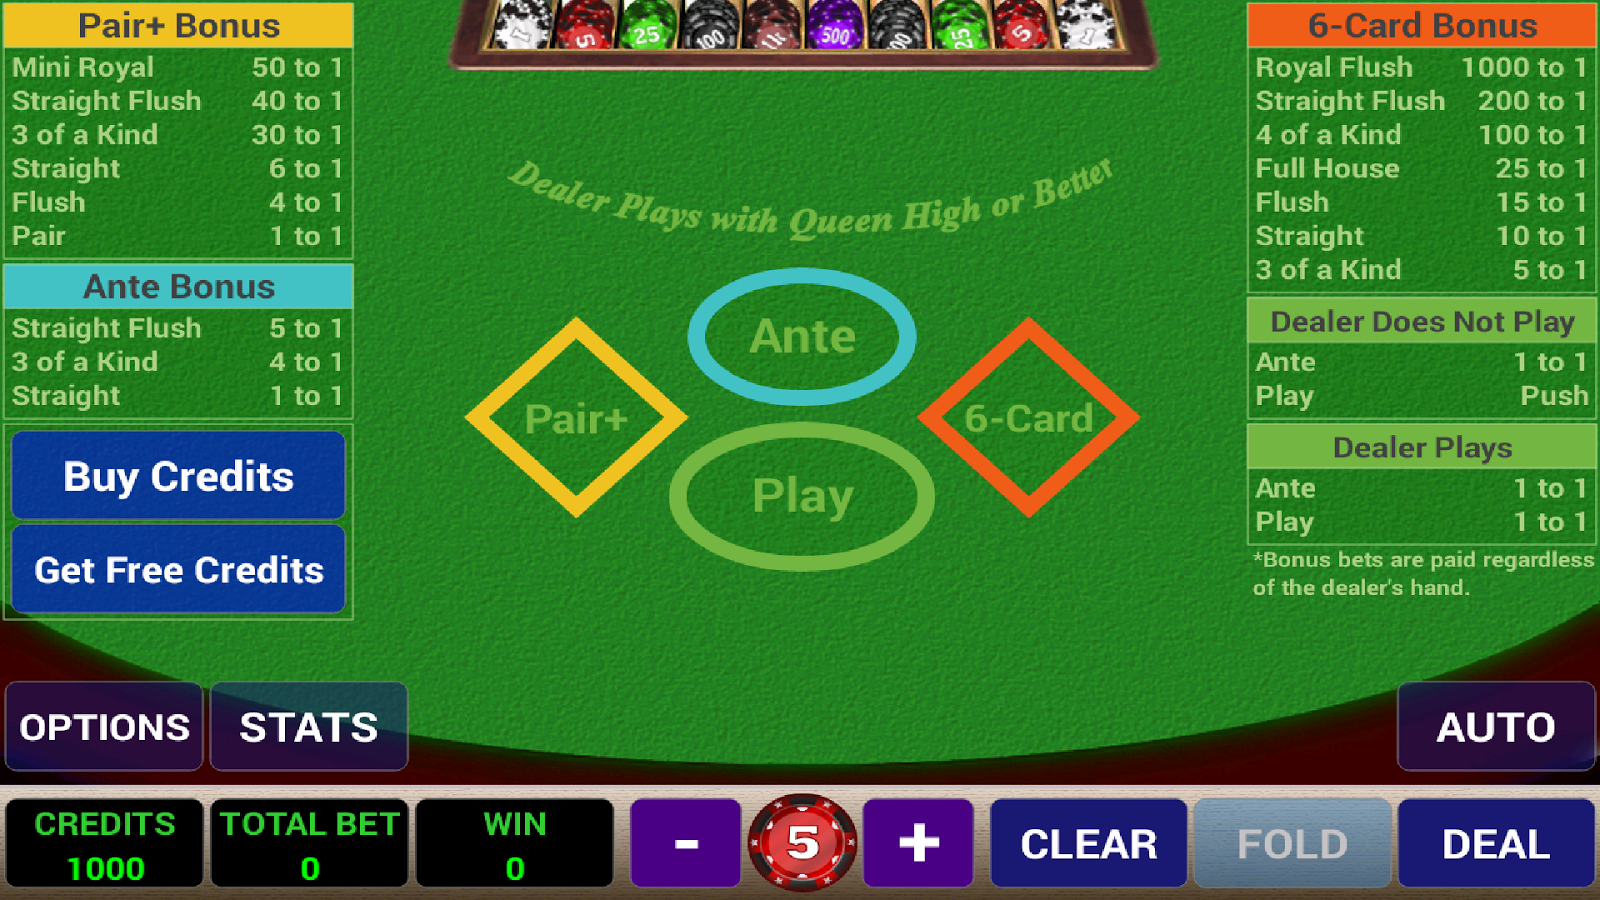 3 card poker casino odds